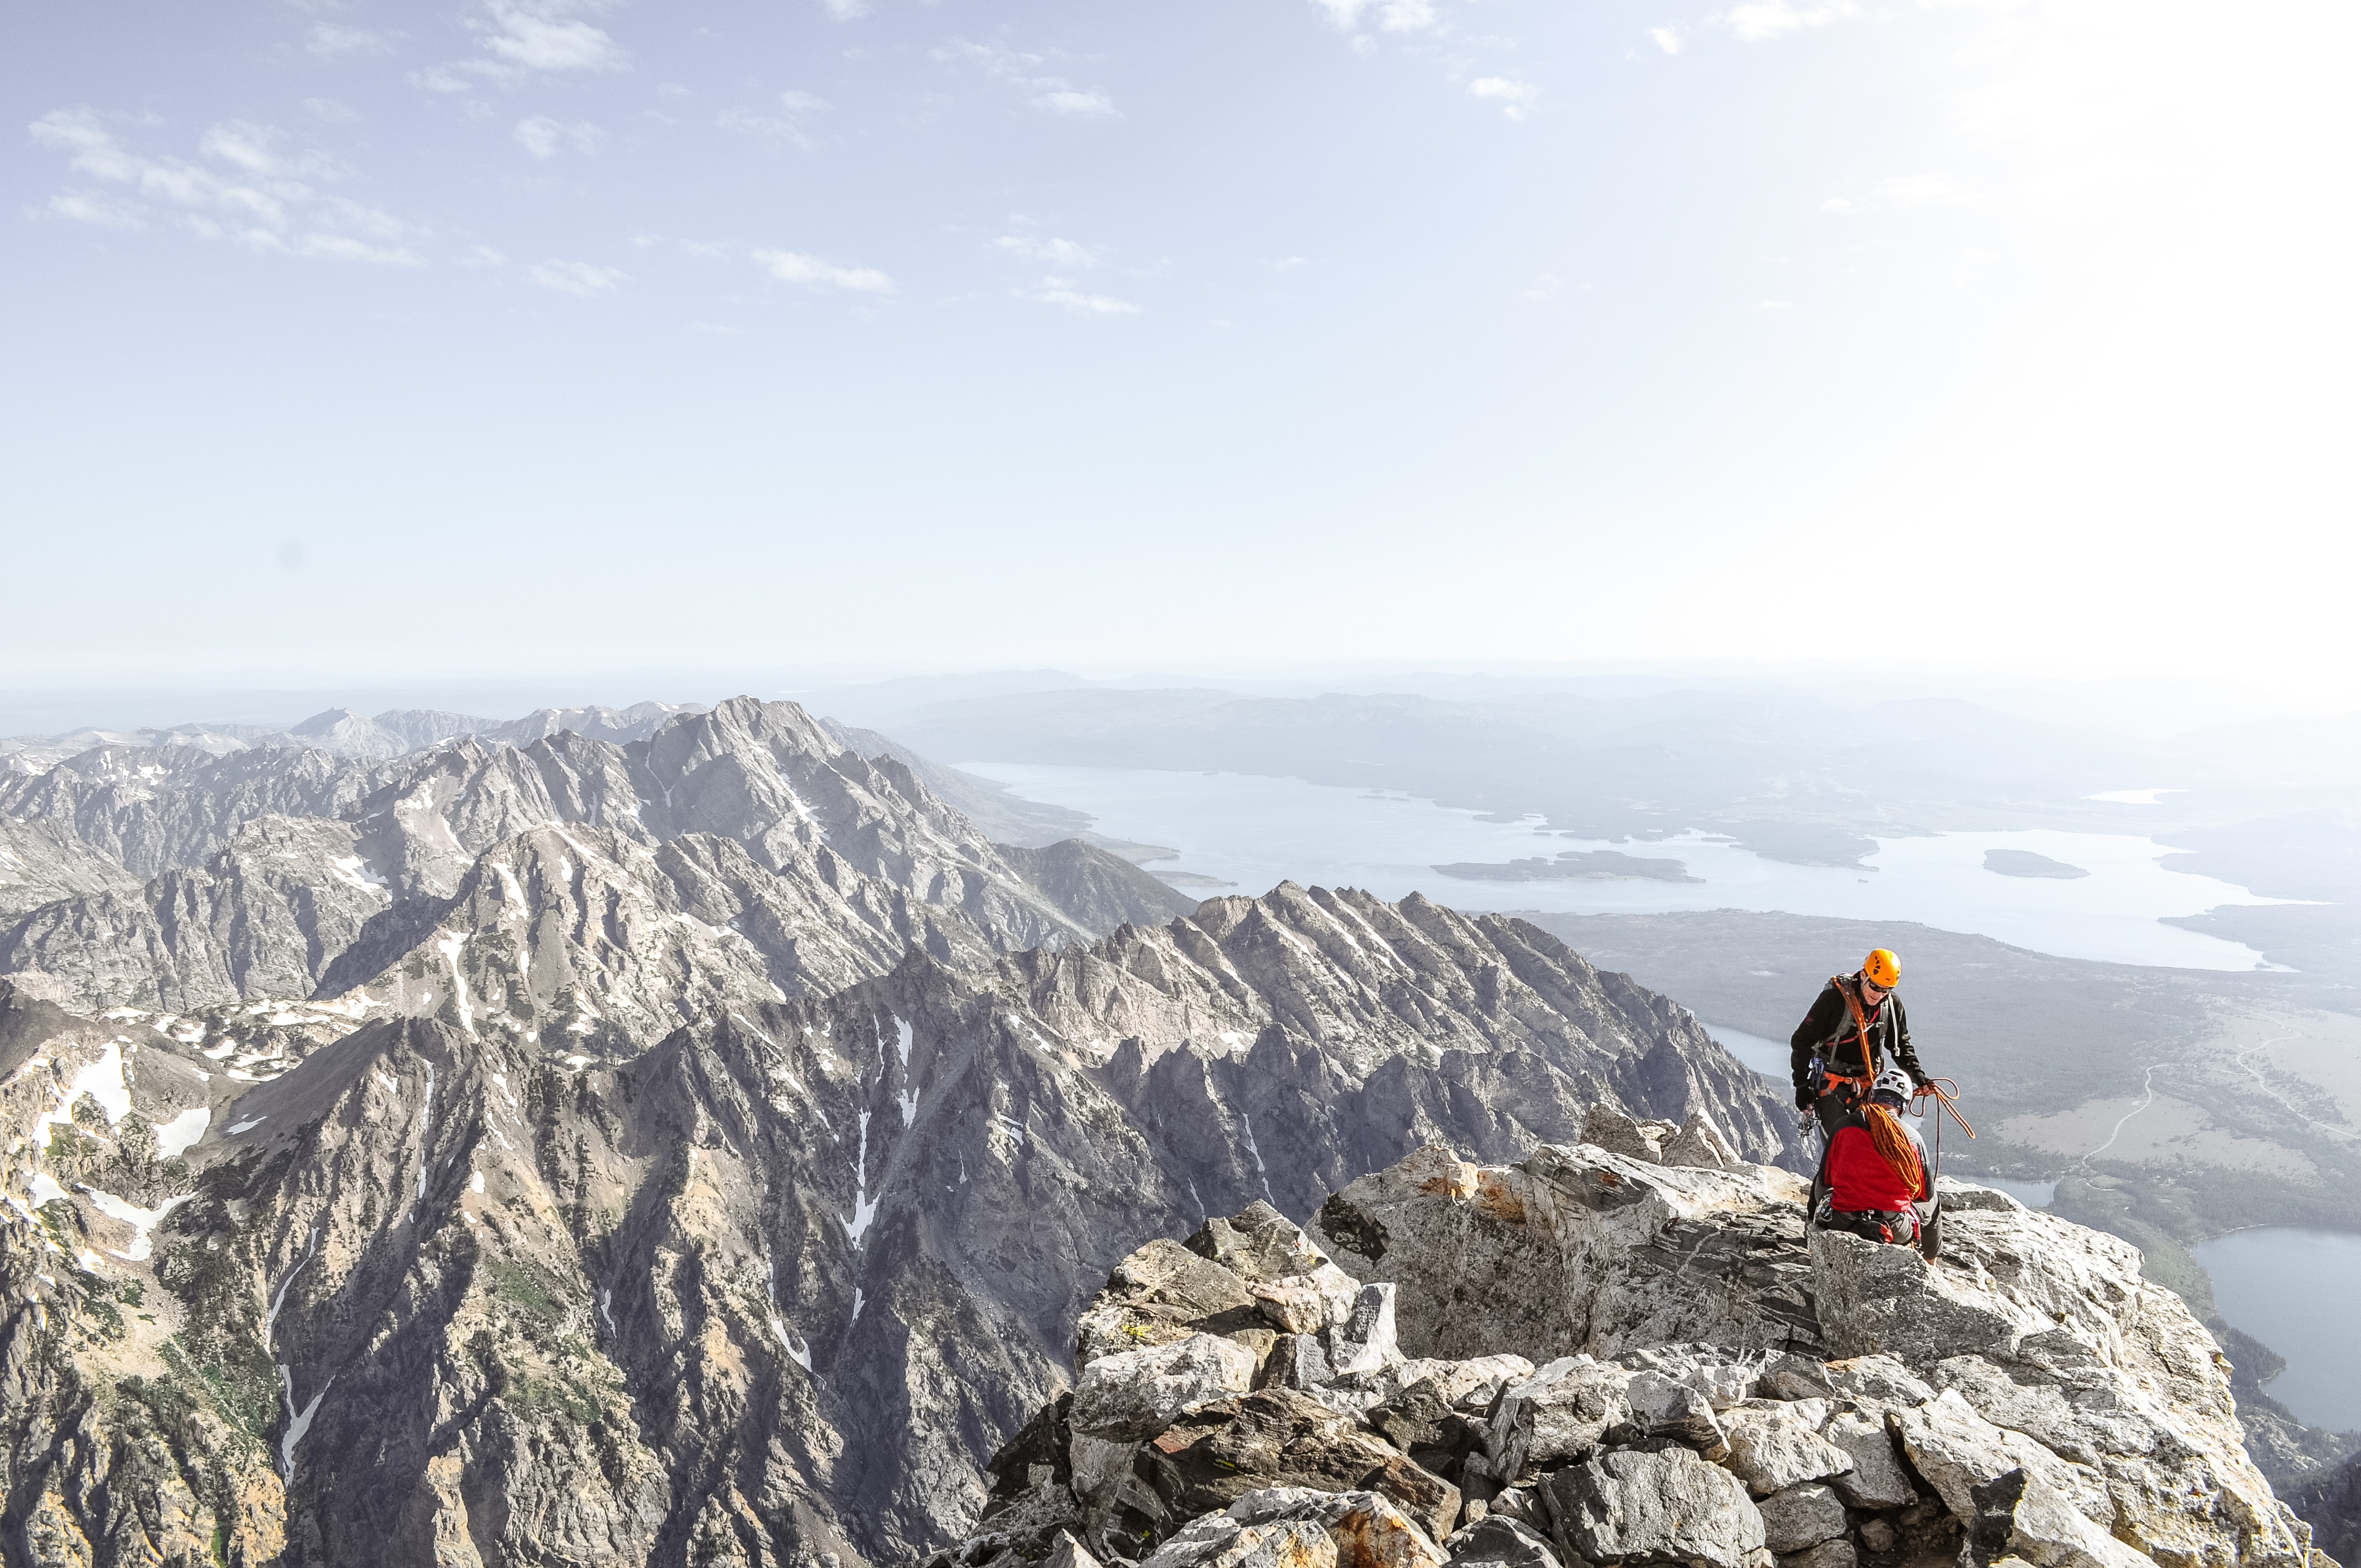 photo of man on top of mountain during daytime